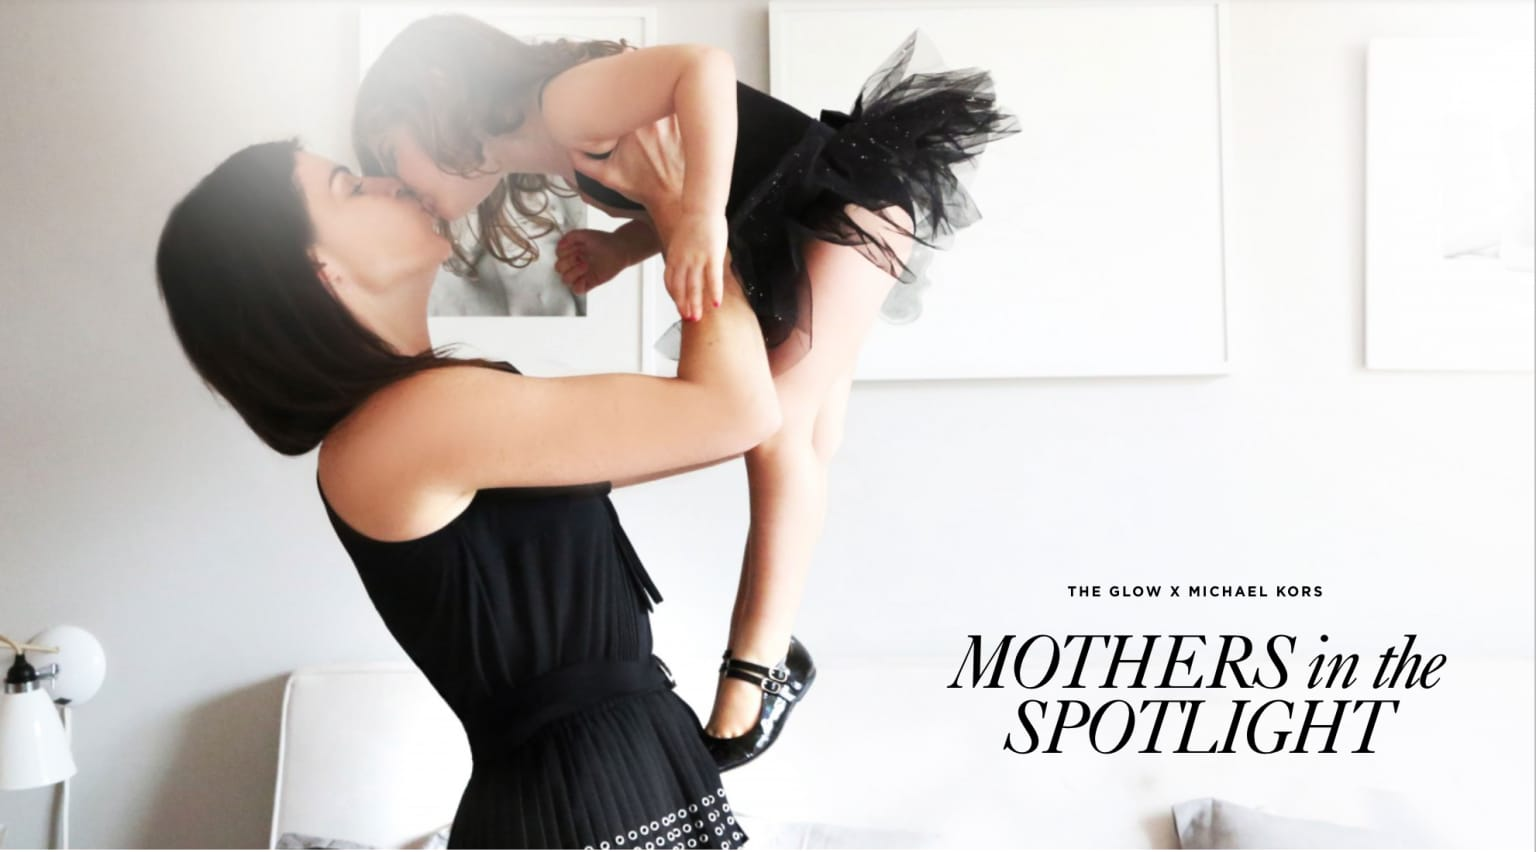 Michael Kors Mother's Day Influencer Campaign